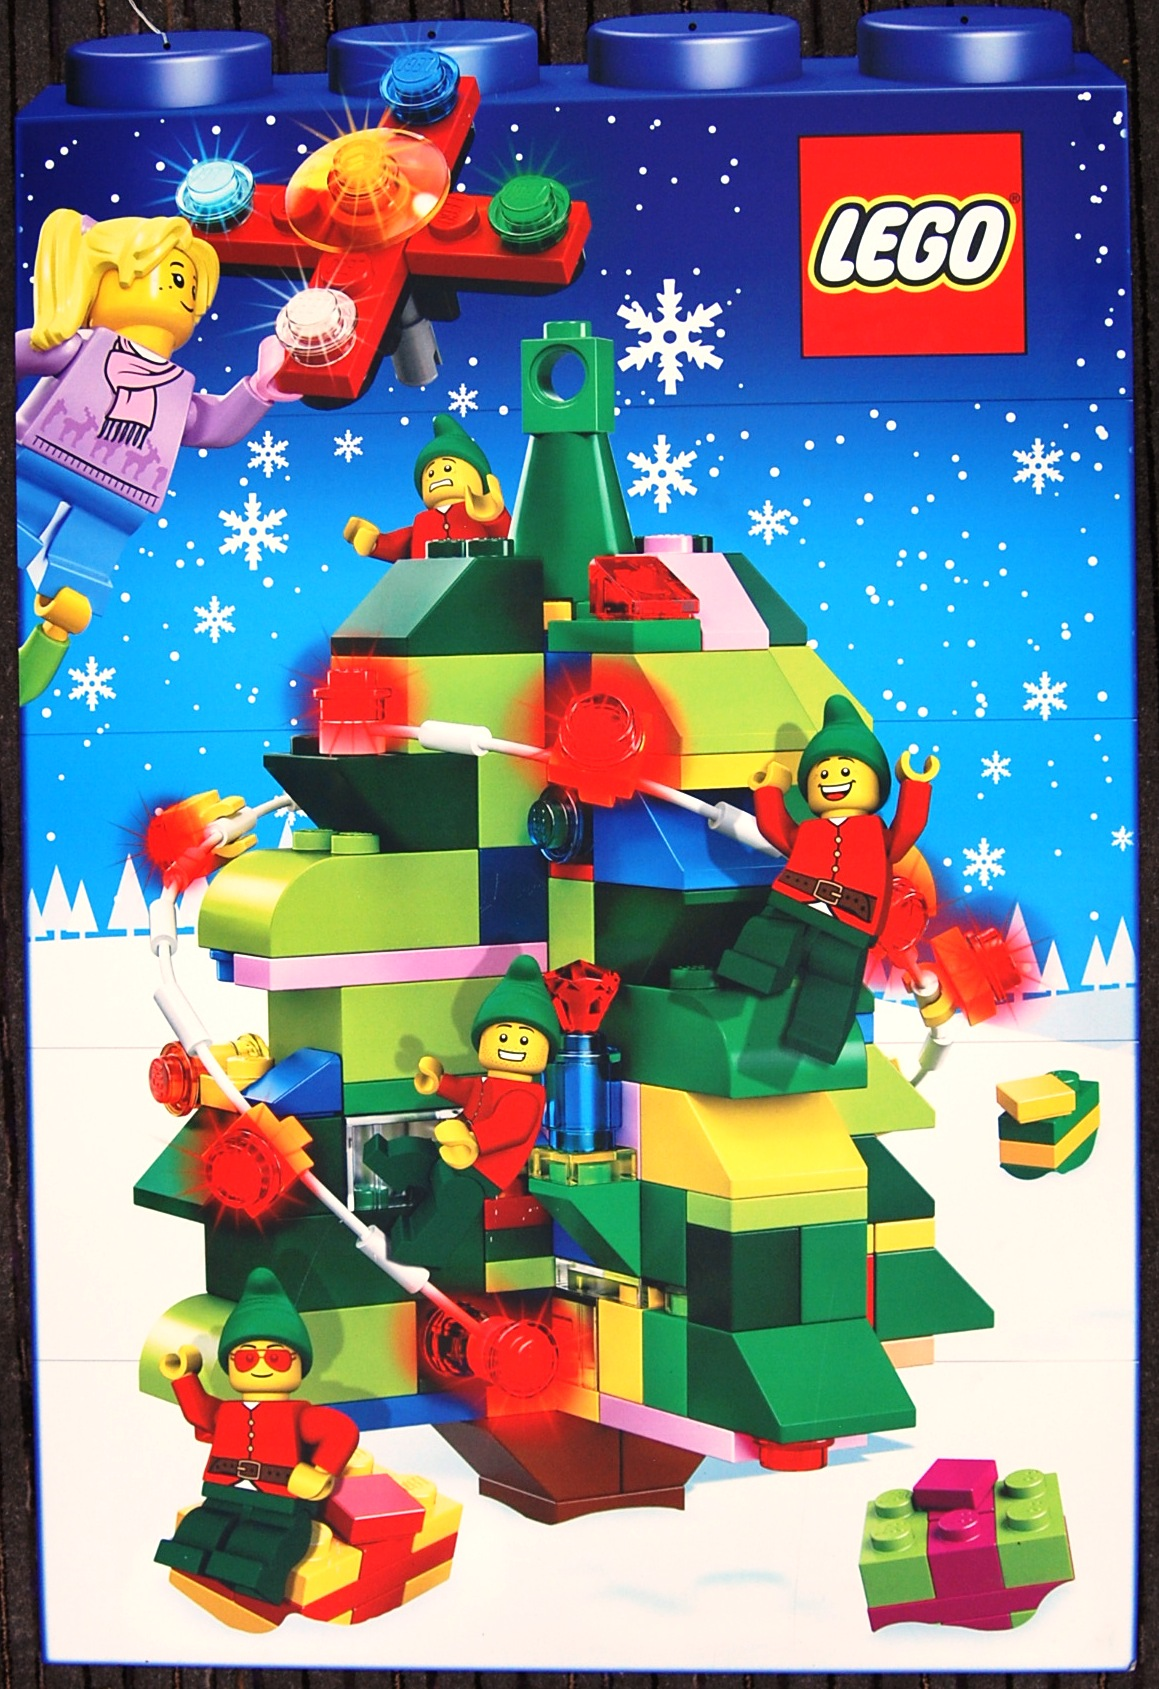 Lot 23 - LEGO CHRISTMAS ORNAMENTAL IN STORE CARD DISPLAY PO